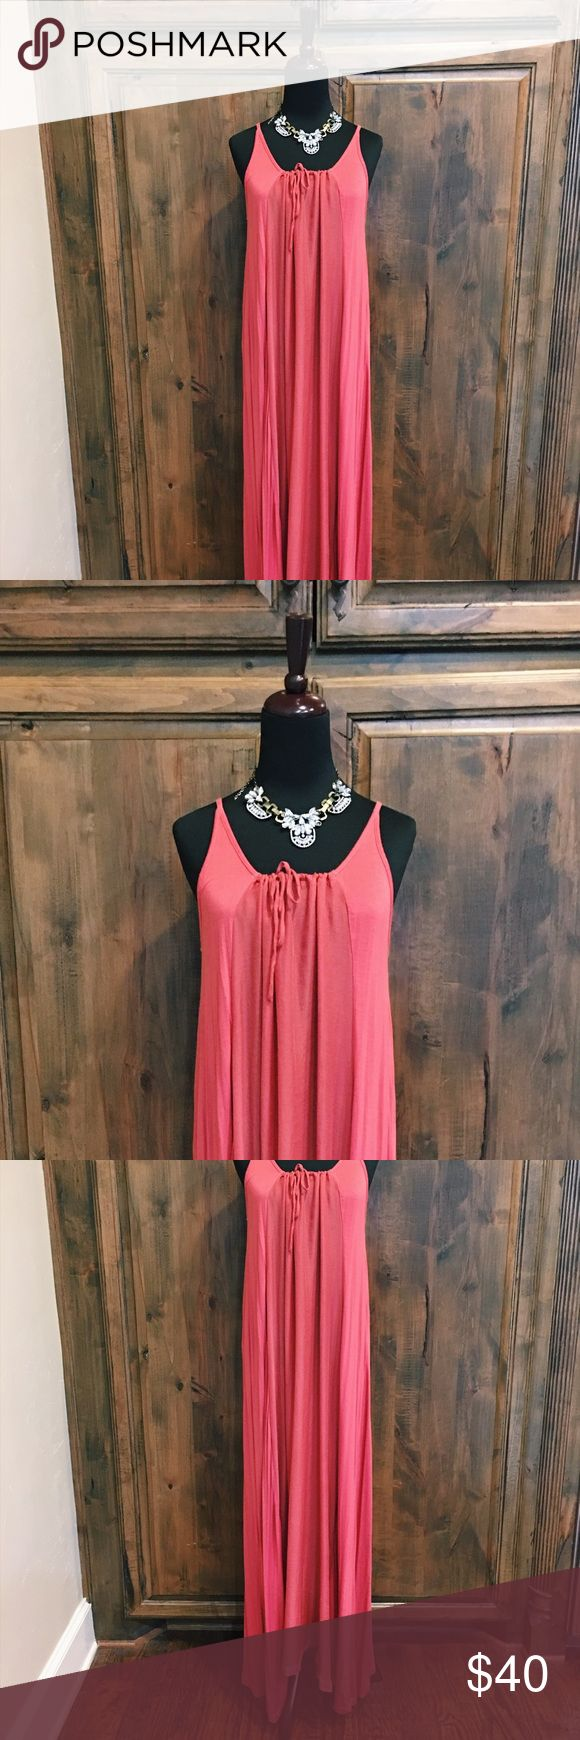 Anthropologie Coral Maxidress Gorgeous Anthropologie coral pink maxidress // sundress // swim cover up // dress for sale. Size small. Tie at neck. Can be dressed up or down. Staple closet item for the warmer months. Like-new. Tag cut out due to itchiness. No trades. Anthropologie Dresses Maxi